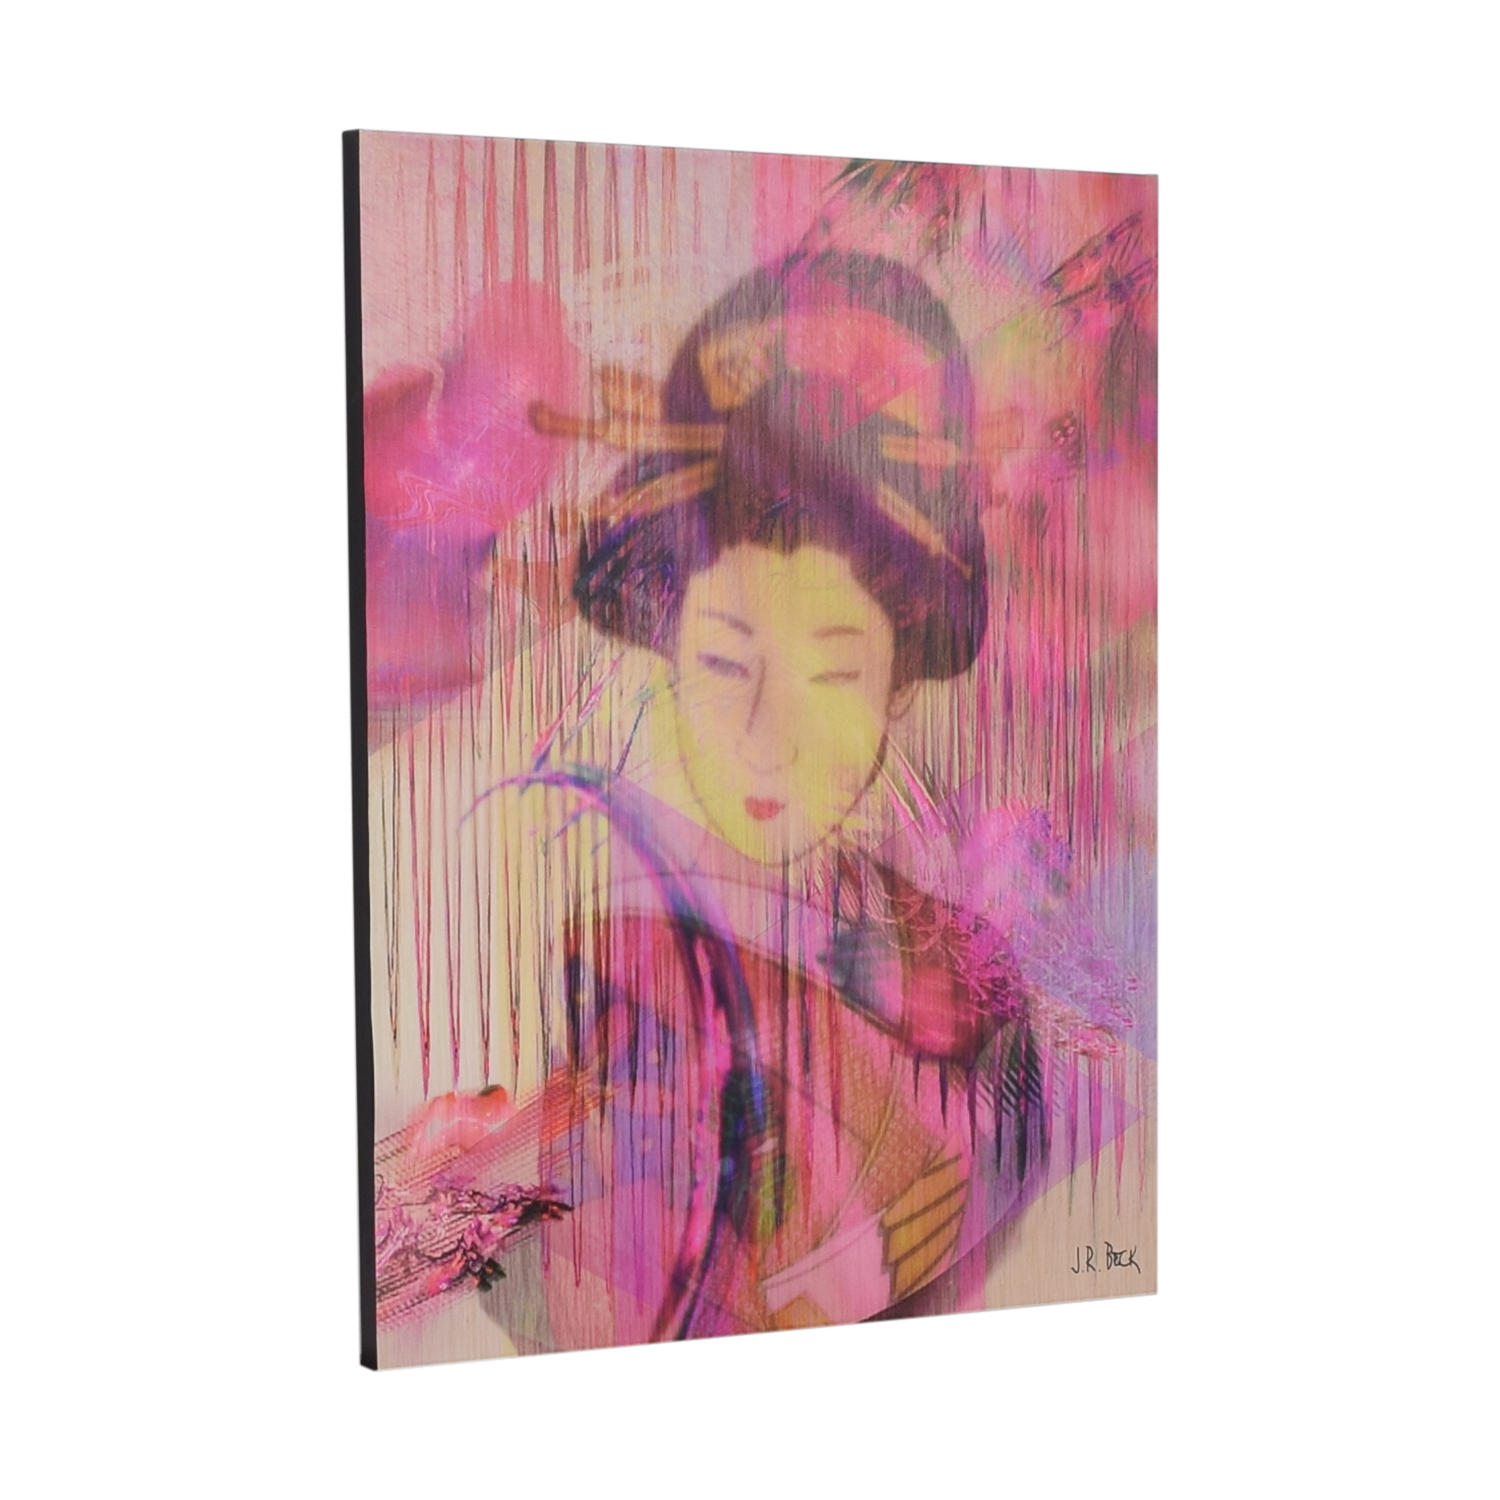 J R Beck Glycee Geisha Painting for sale